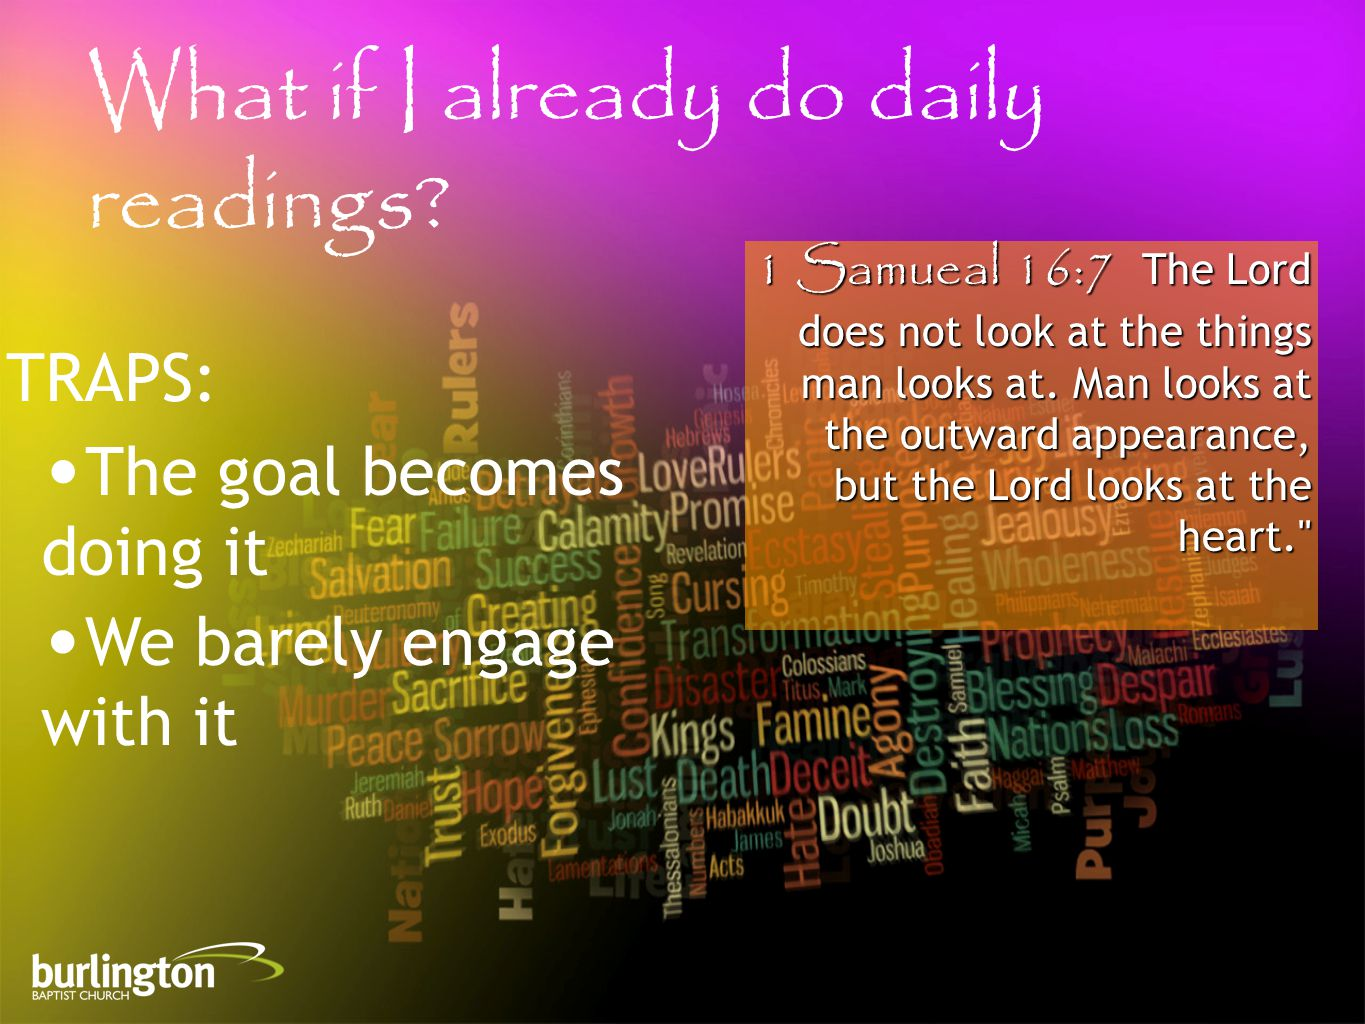 1 Samueal 16:7 The Lord does not look at the things man looks at.